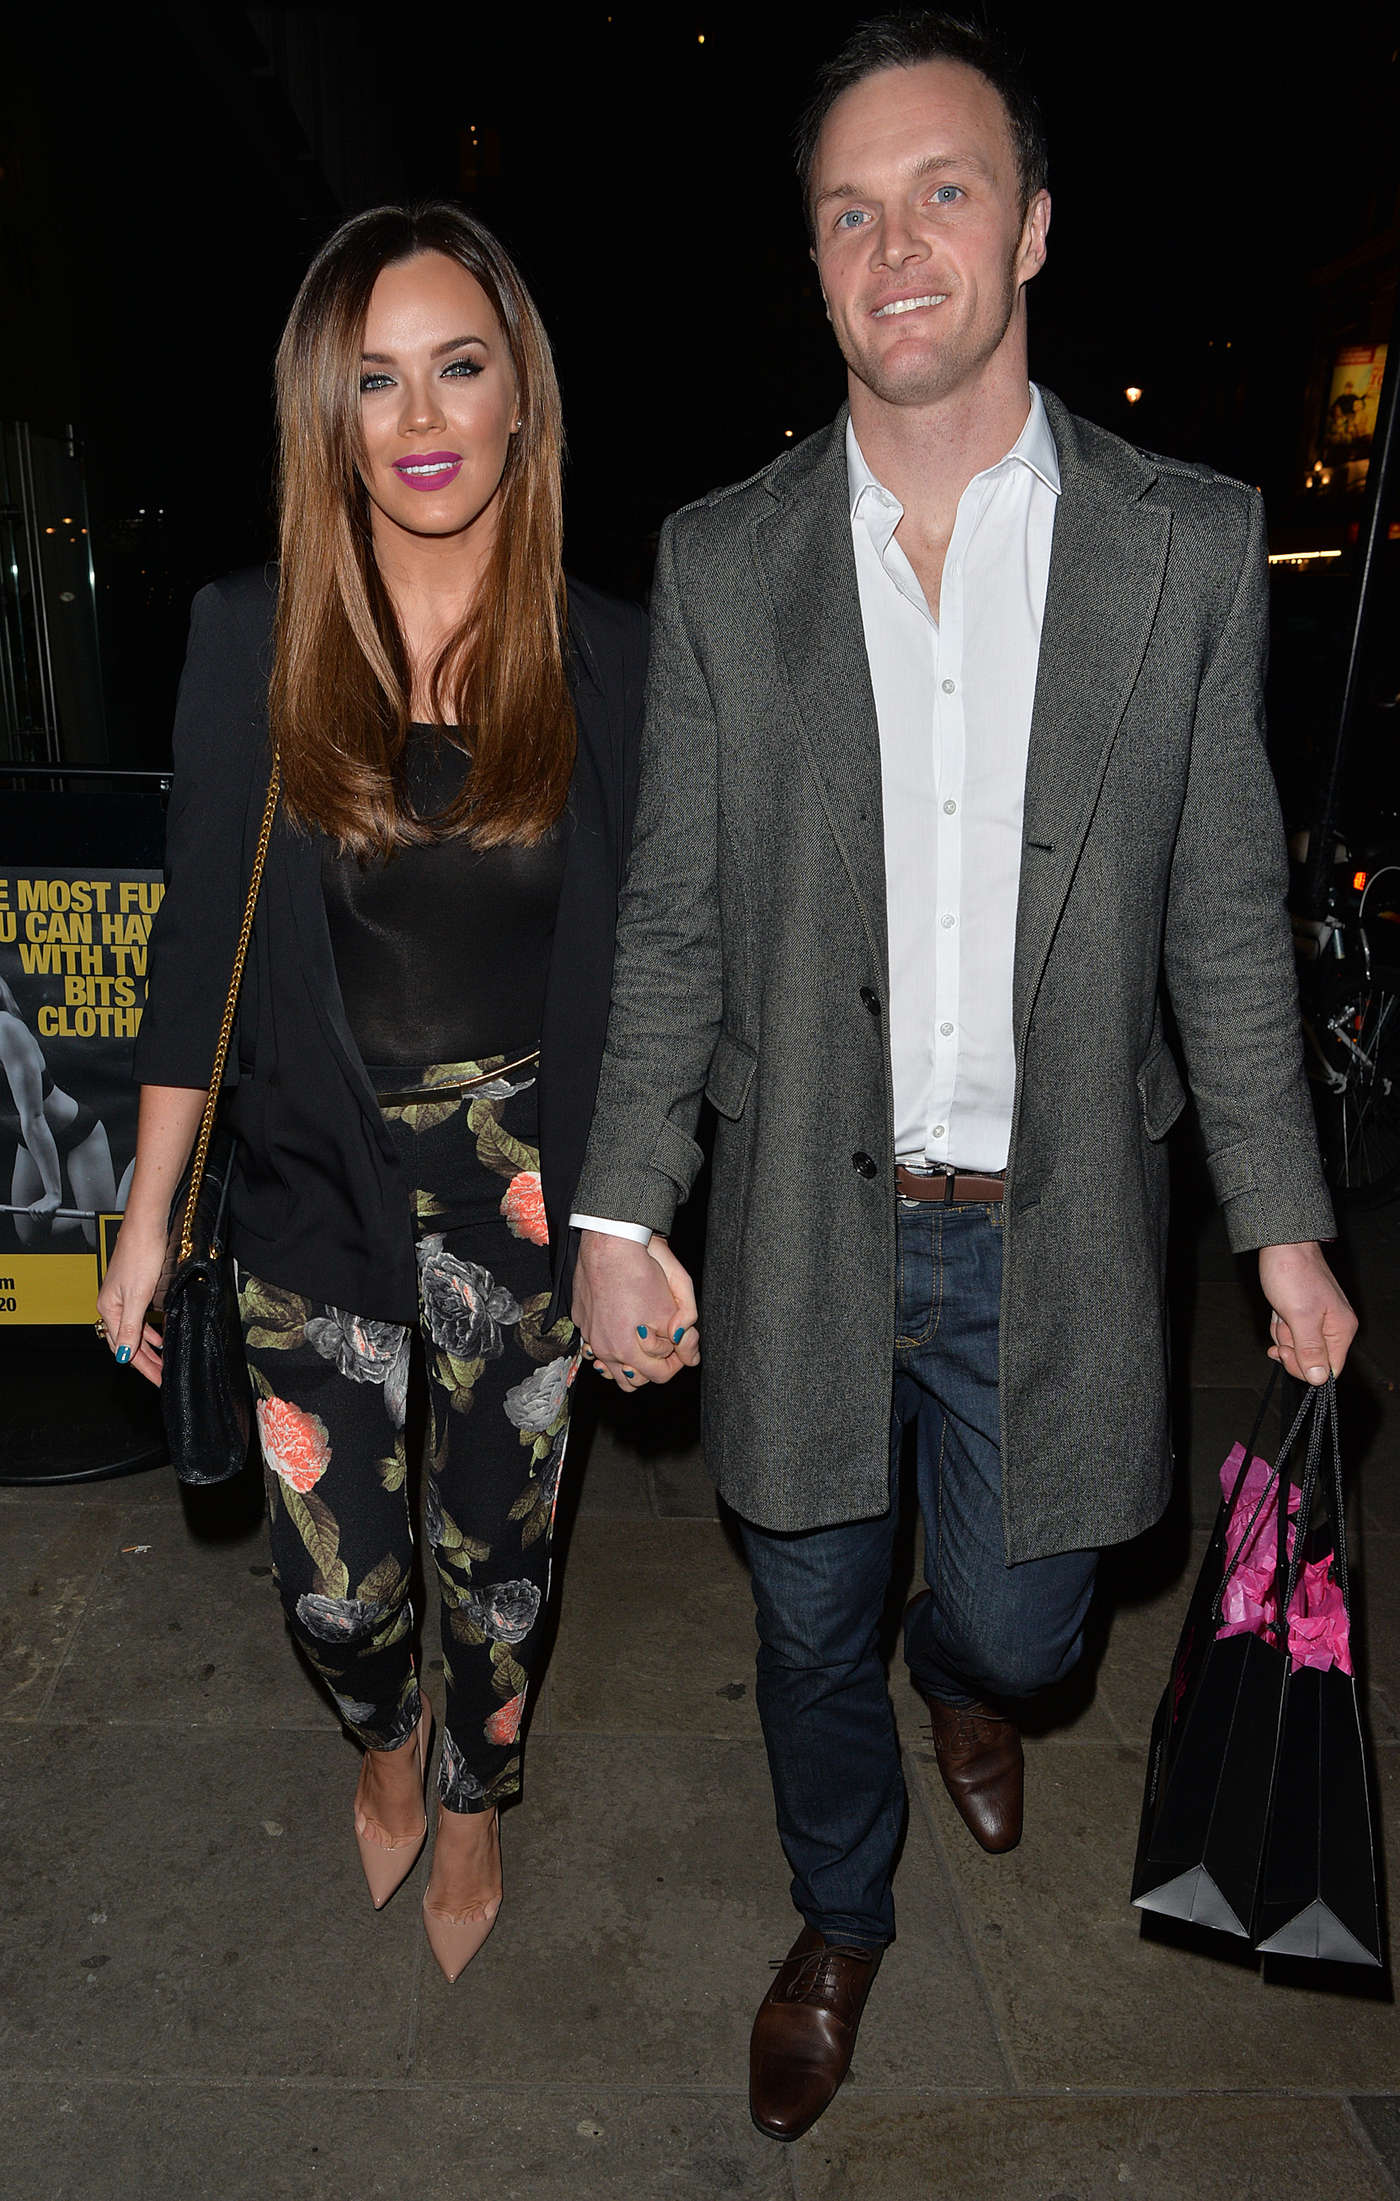 Maria Fowler with boyfriend Kelvin Batey in Mayfair